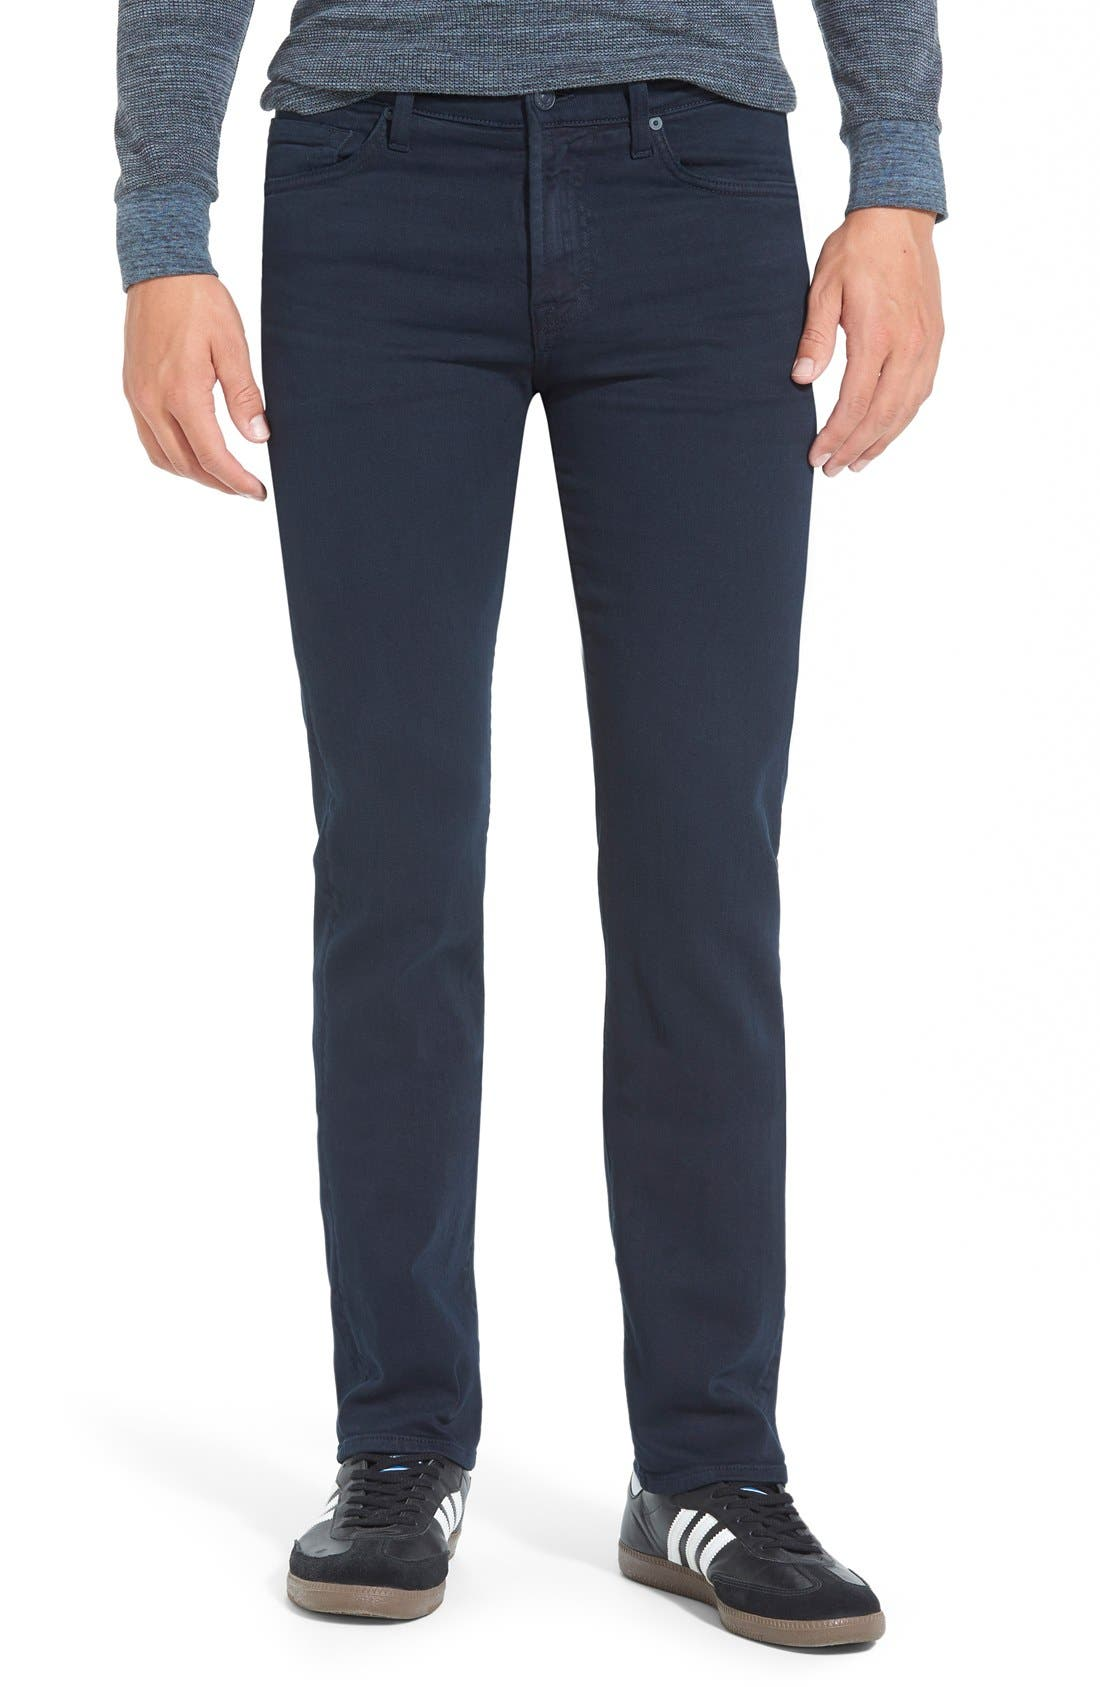 'Slimmy - Luxe Performance' Slim Fit Jeans,                             Main thumbnail 1, color,